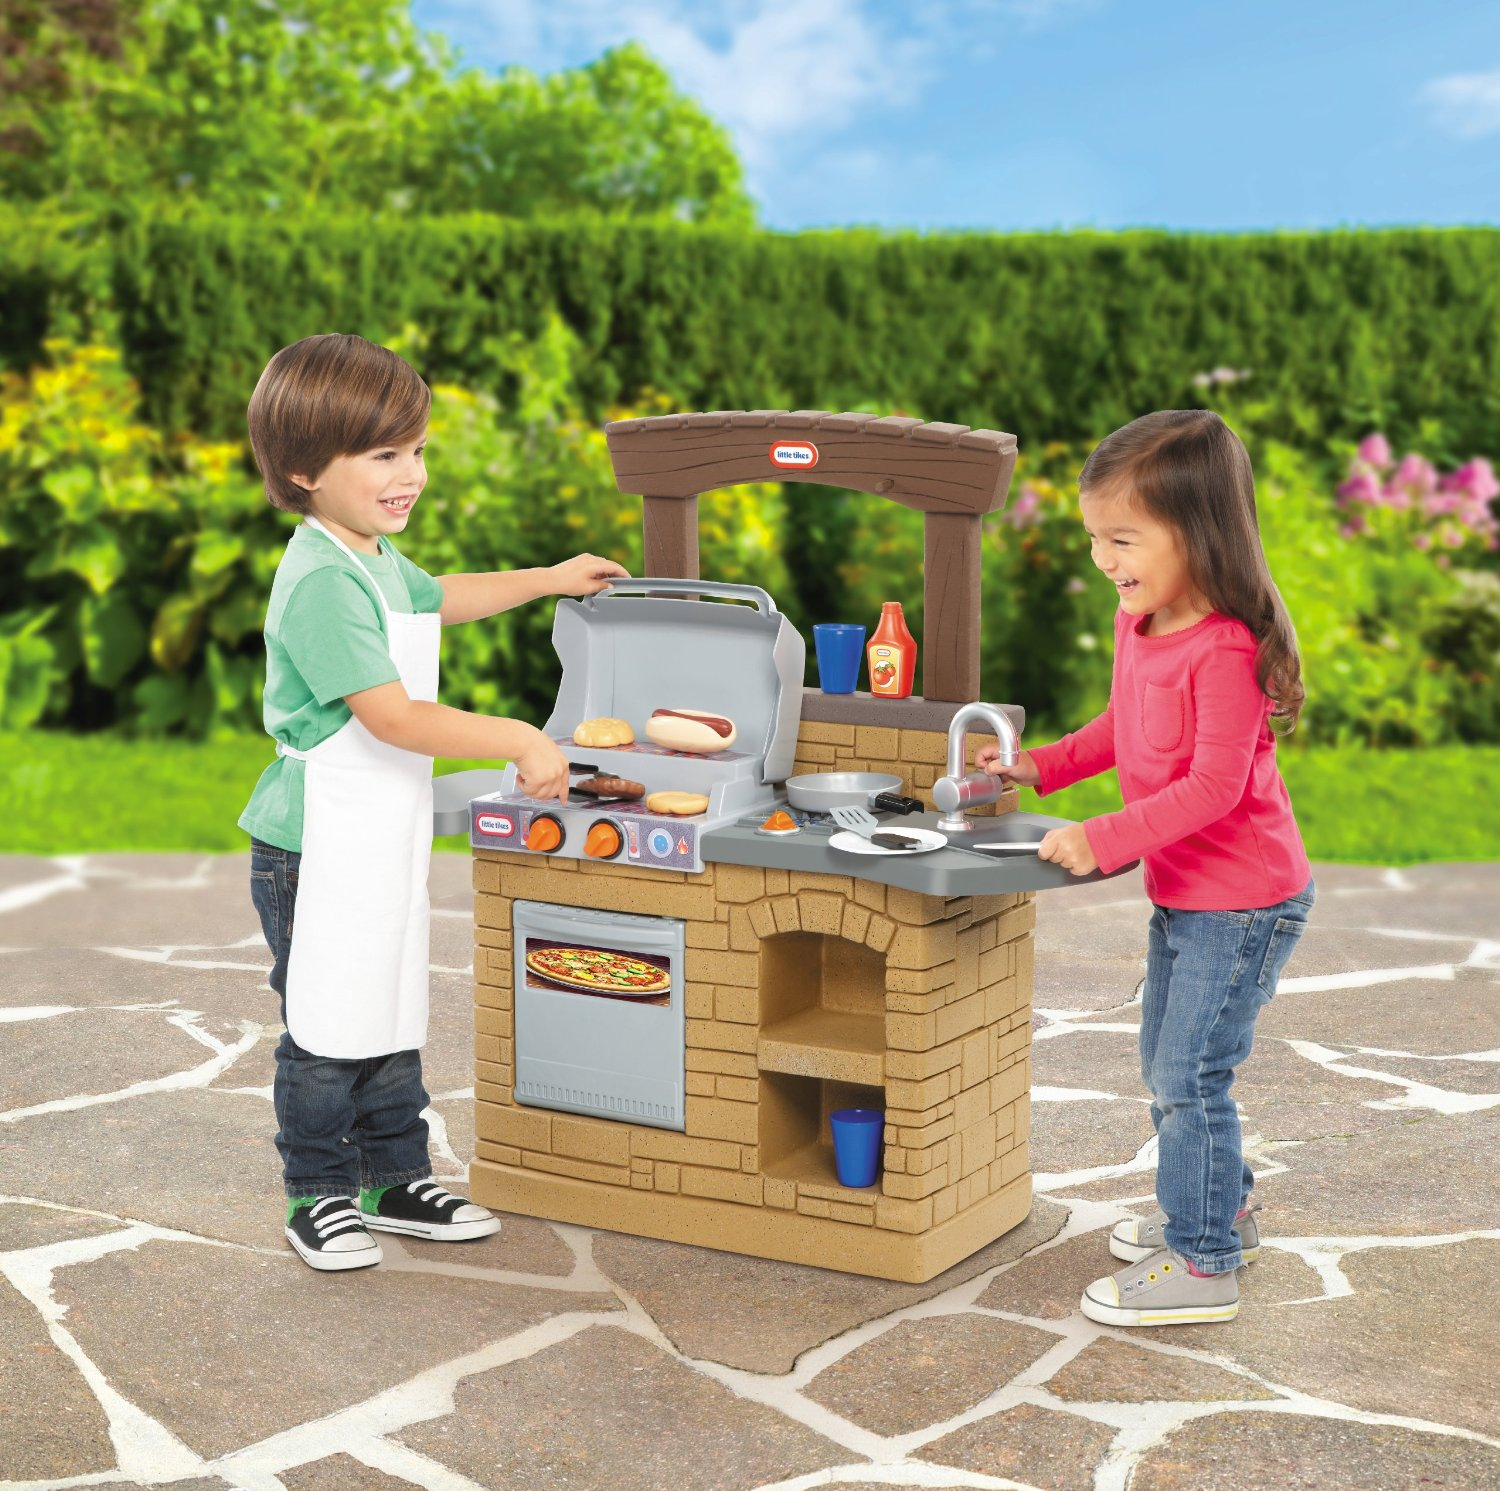 Outdoor Toys For Toddlers And Preschoolers : Kids outdoor play kitchens and toy grills